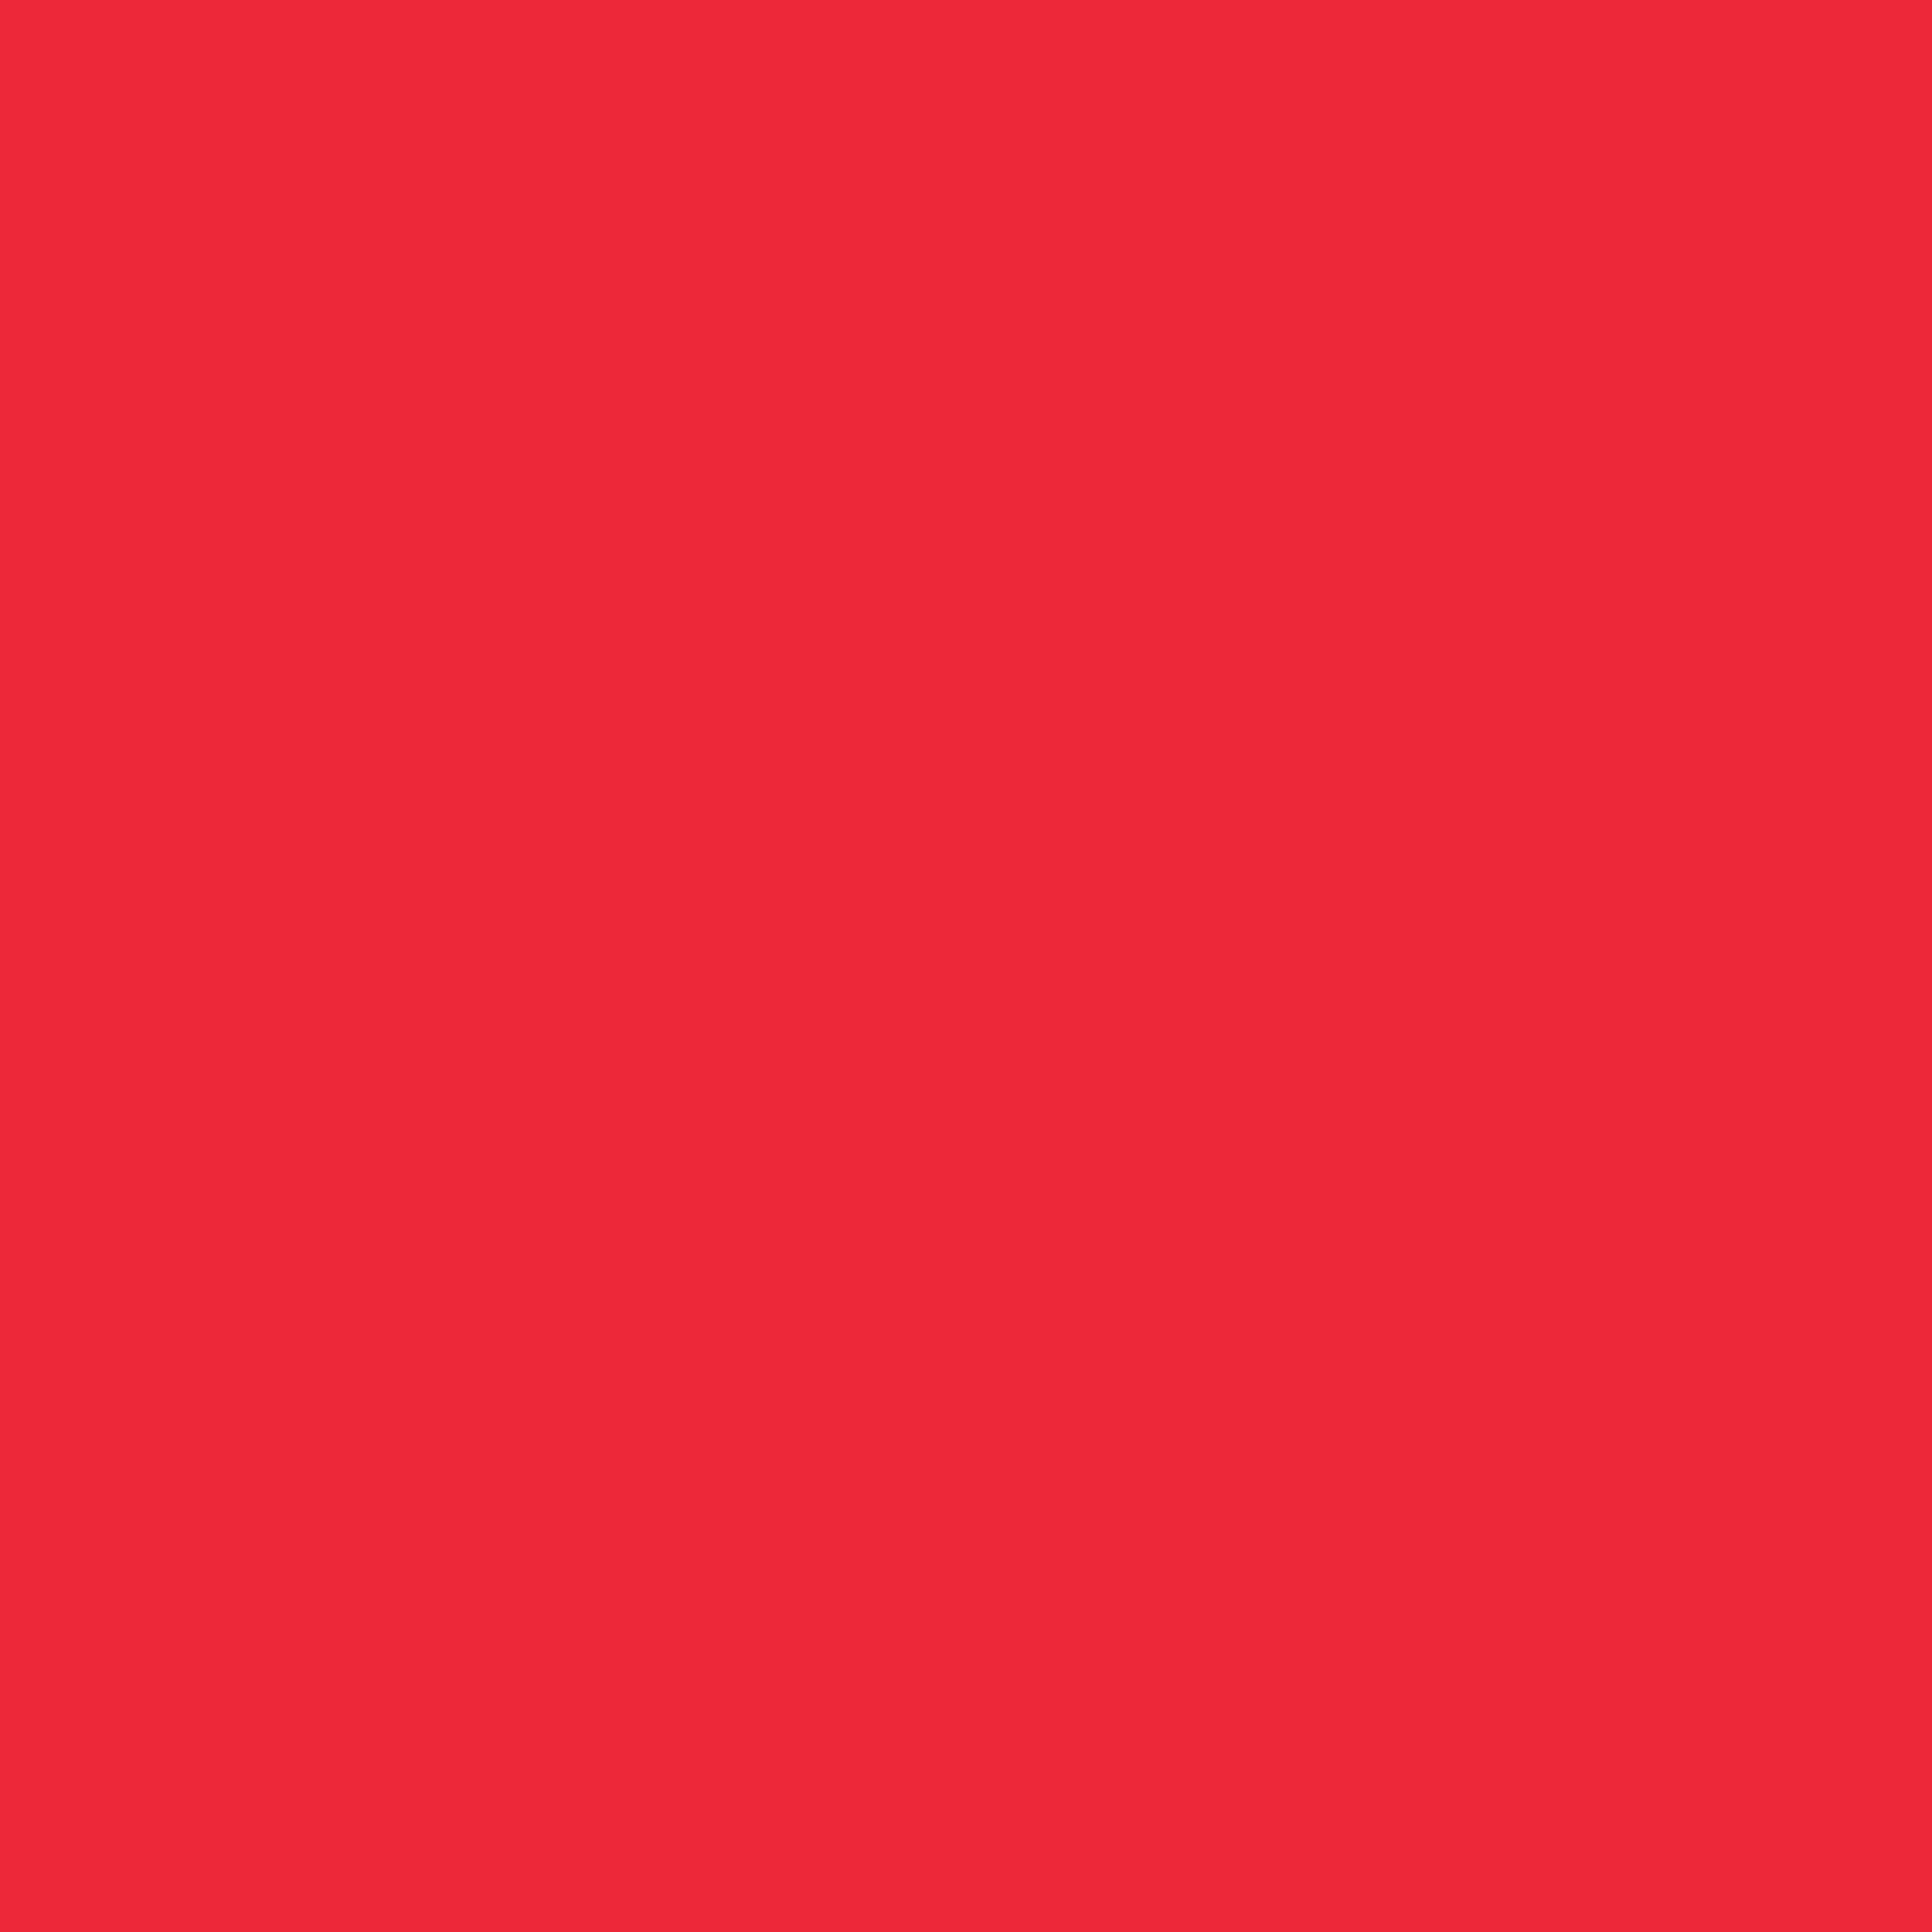 2732x2732 Red Pantone Solid Color Background